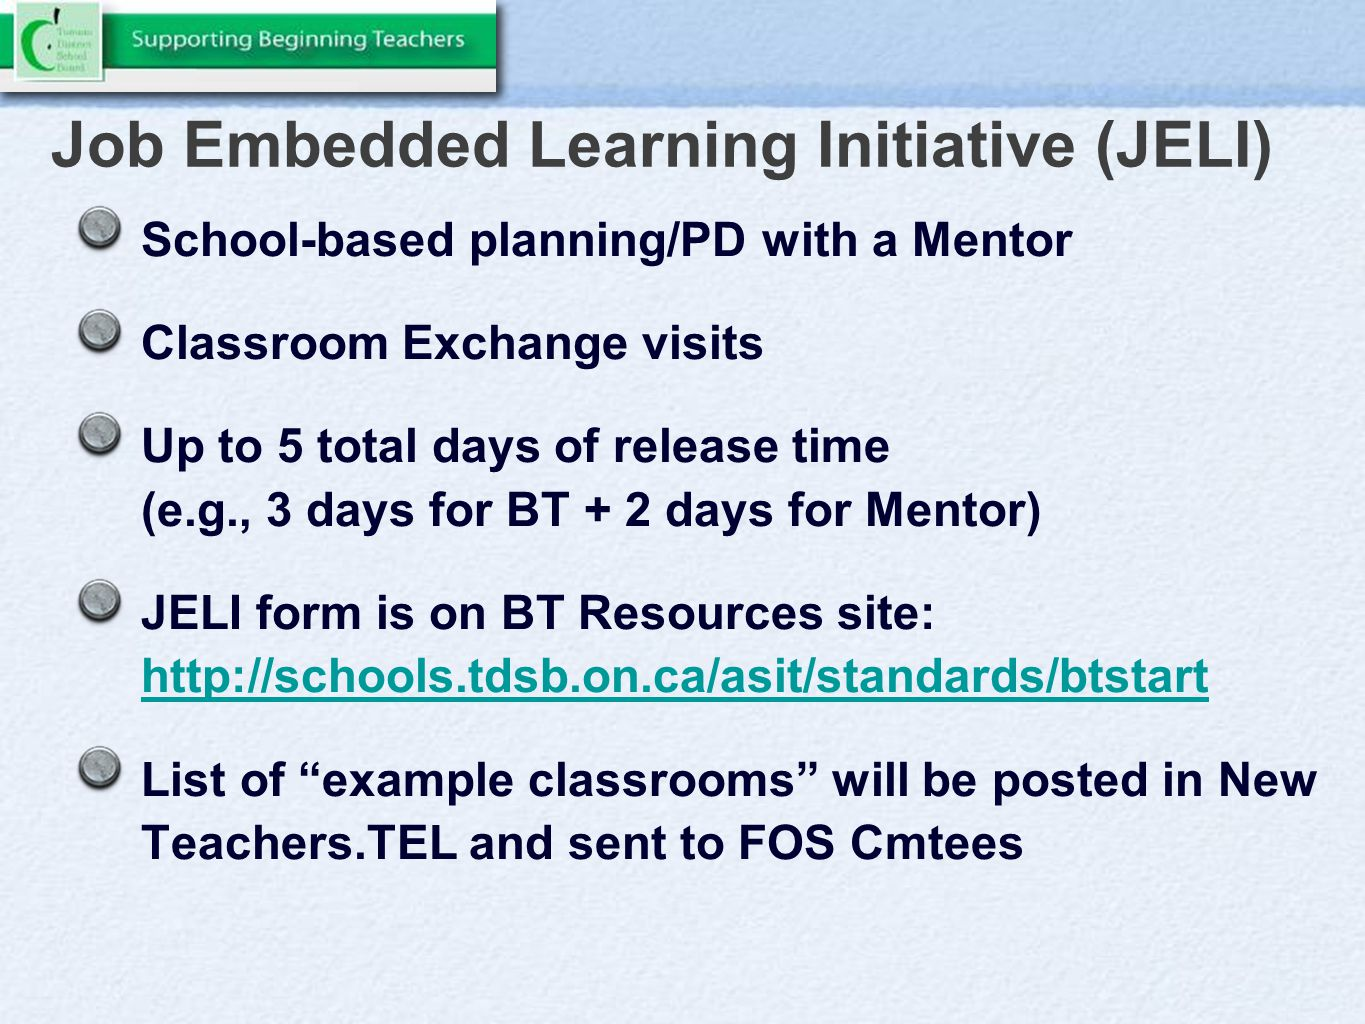 Job Embedded Learning Initiative (JELI) School-based planning/PD with a Mentor Classroom Exchange visits Up to 5 total days of release time (e.g., 3 days for BT + 2 days for Mentor) JELI form is on BT Resources site: http://schools.tdsb.on.ca/asit/standards/btstart http://schools.tdsb.on.ca/asit/standards/btstart List of example classrooms will be posted in New Teachers.TEL and sent to FOS Cmtees